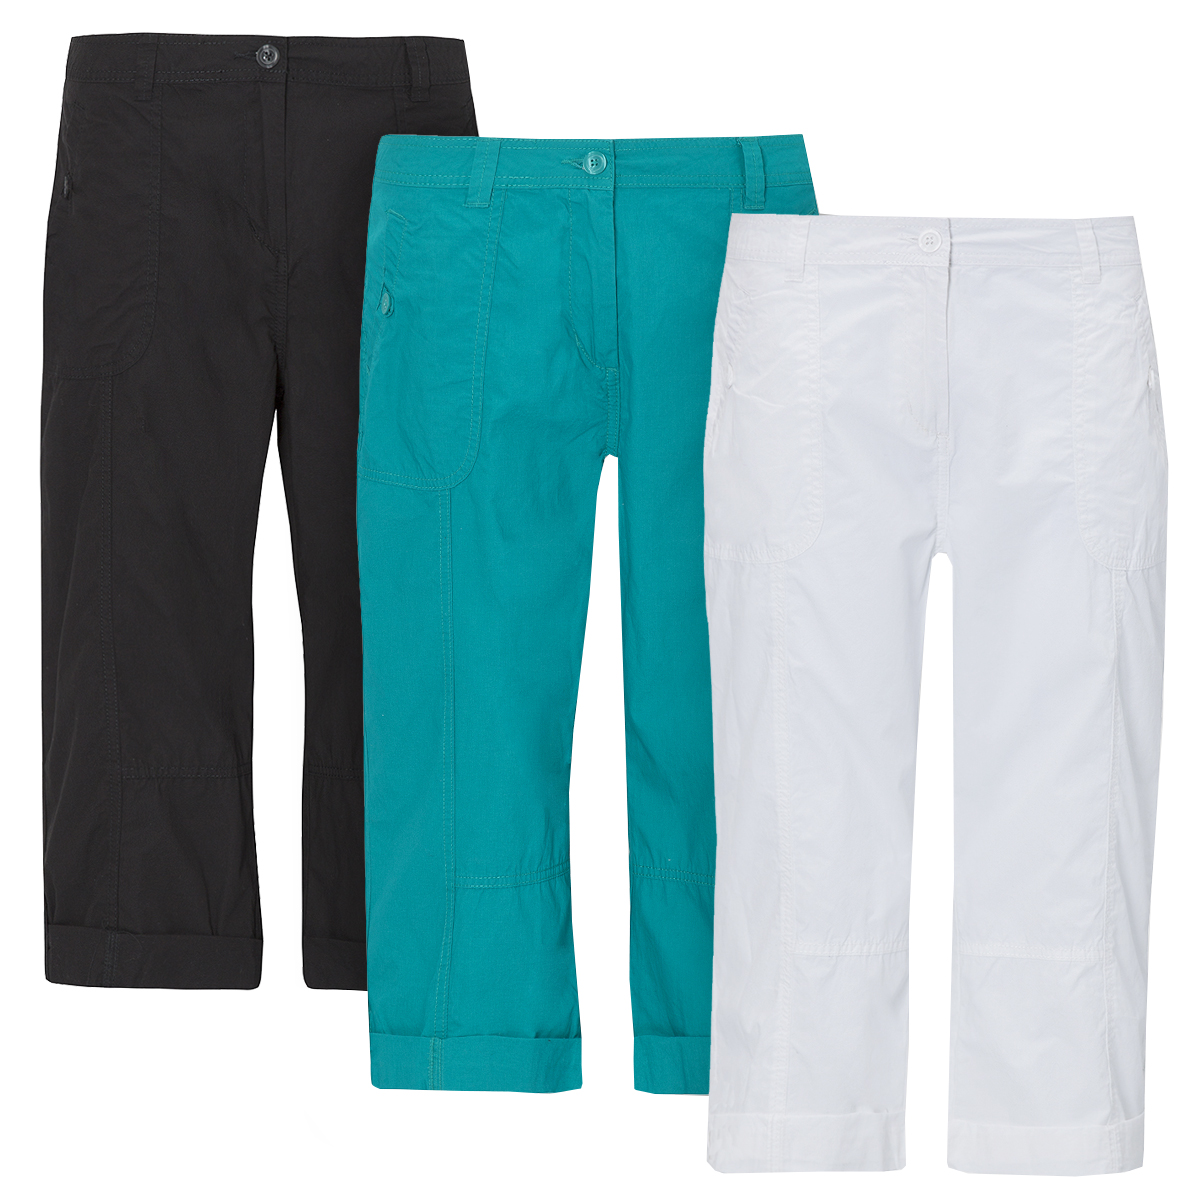 Our range of ladies cotton trousers are perfectly tailored to the natural curves of your body to provide an extremely comfortable fit and feel whenever you choose to wear them, any day of the week.